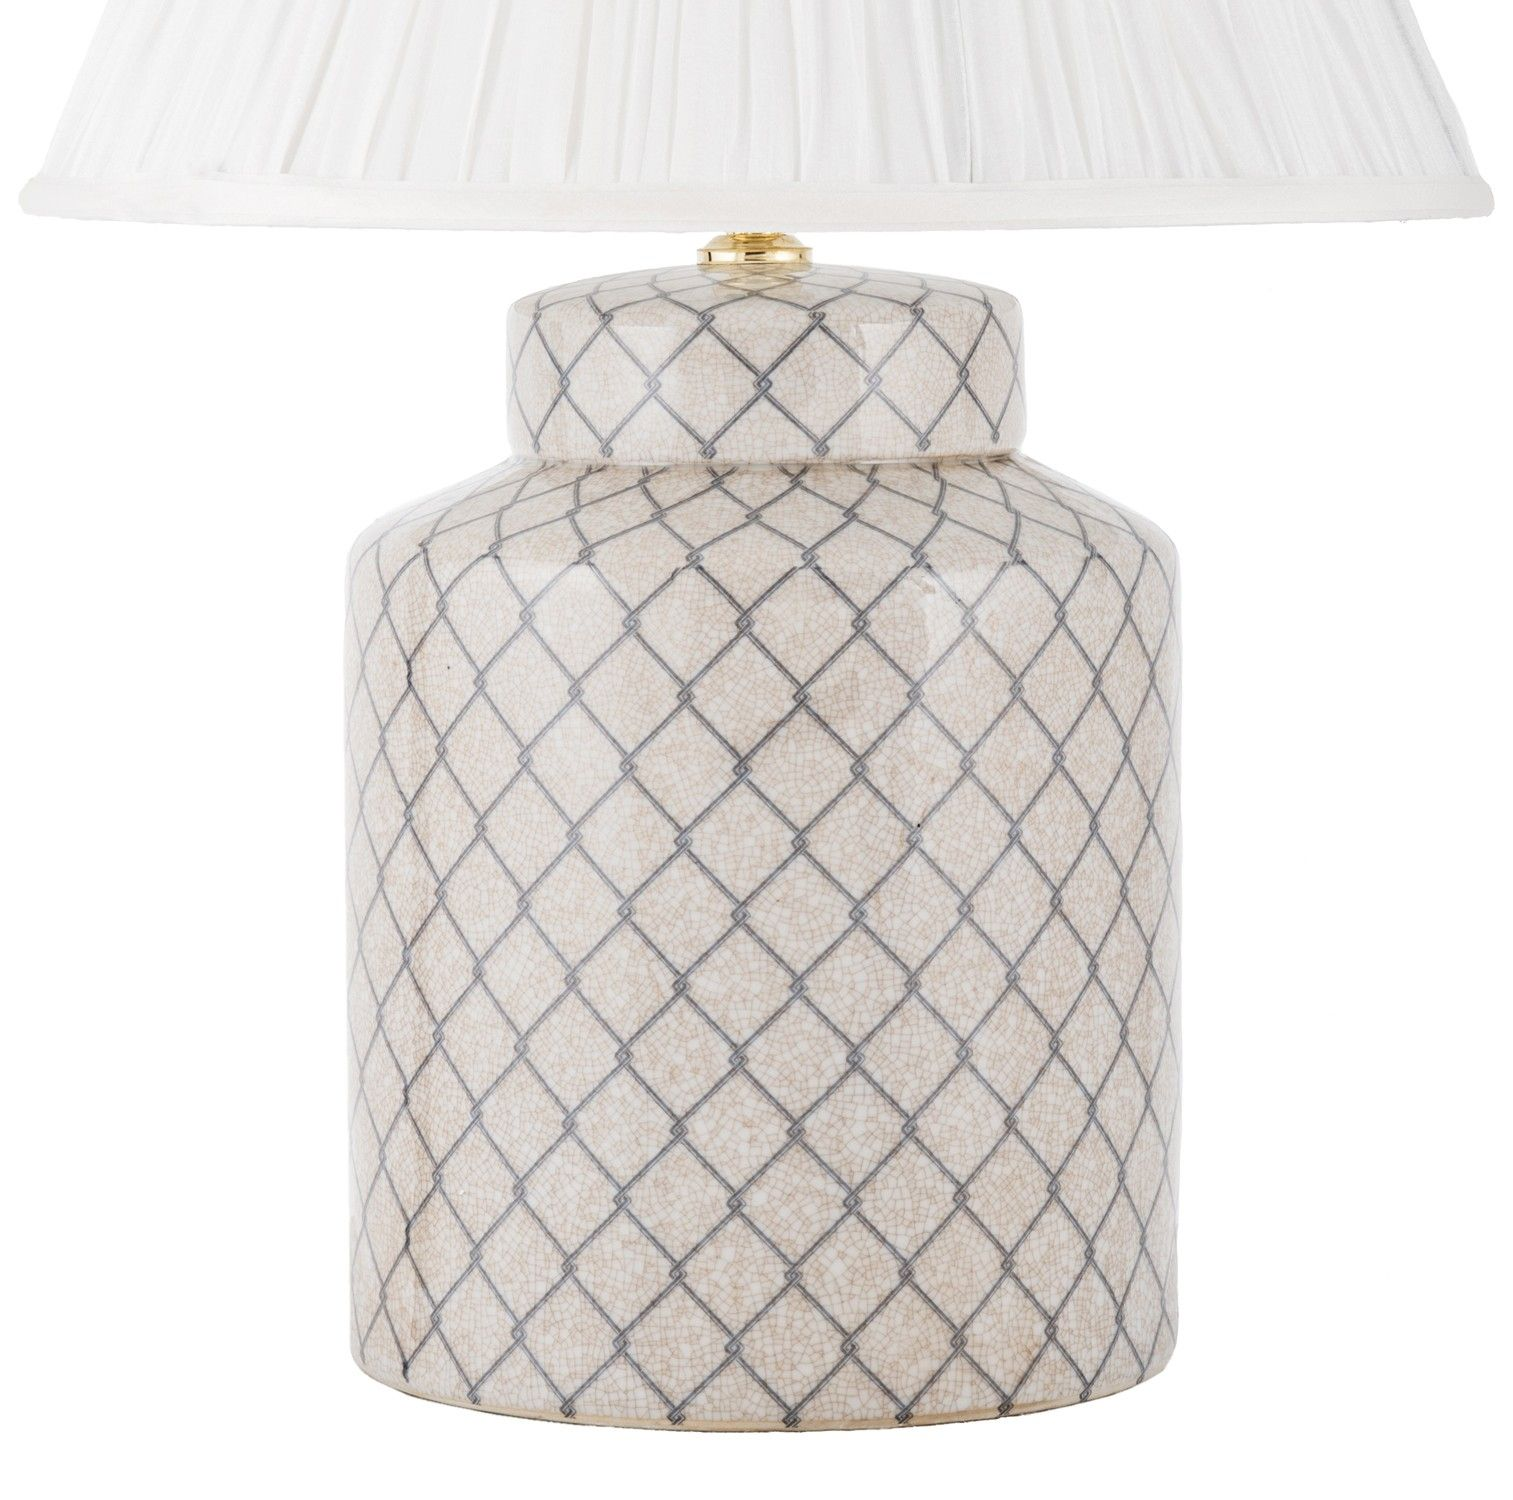 MESH CANISTER LAMP BASE (With Images)